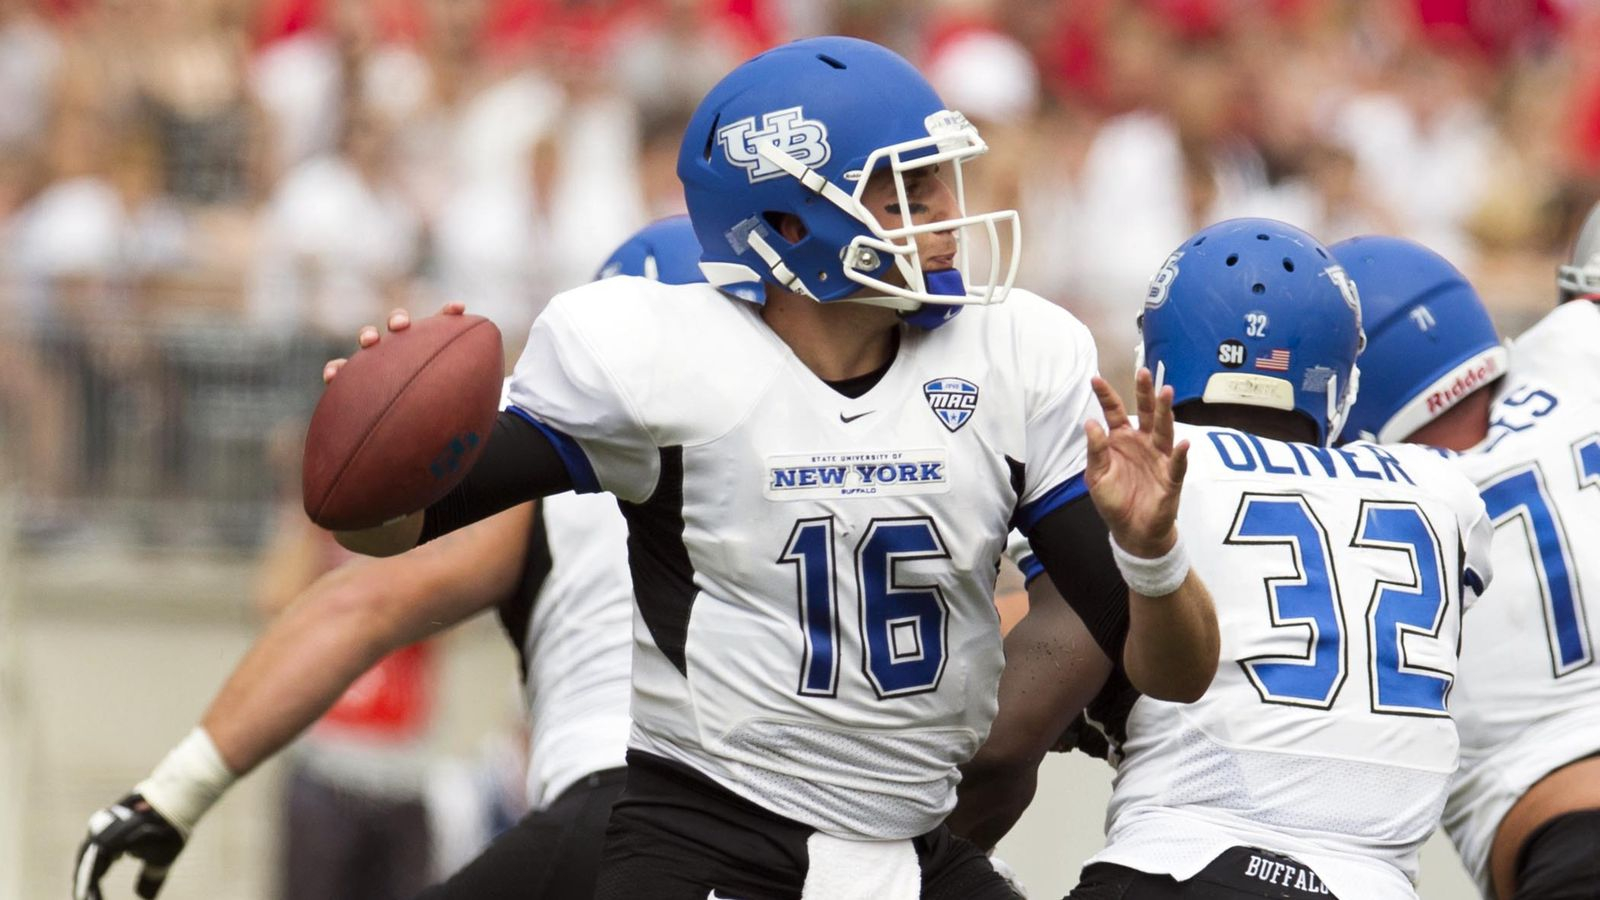 UB Football on Twitter: Bulls Crunch Chips to Move to 5-1